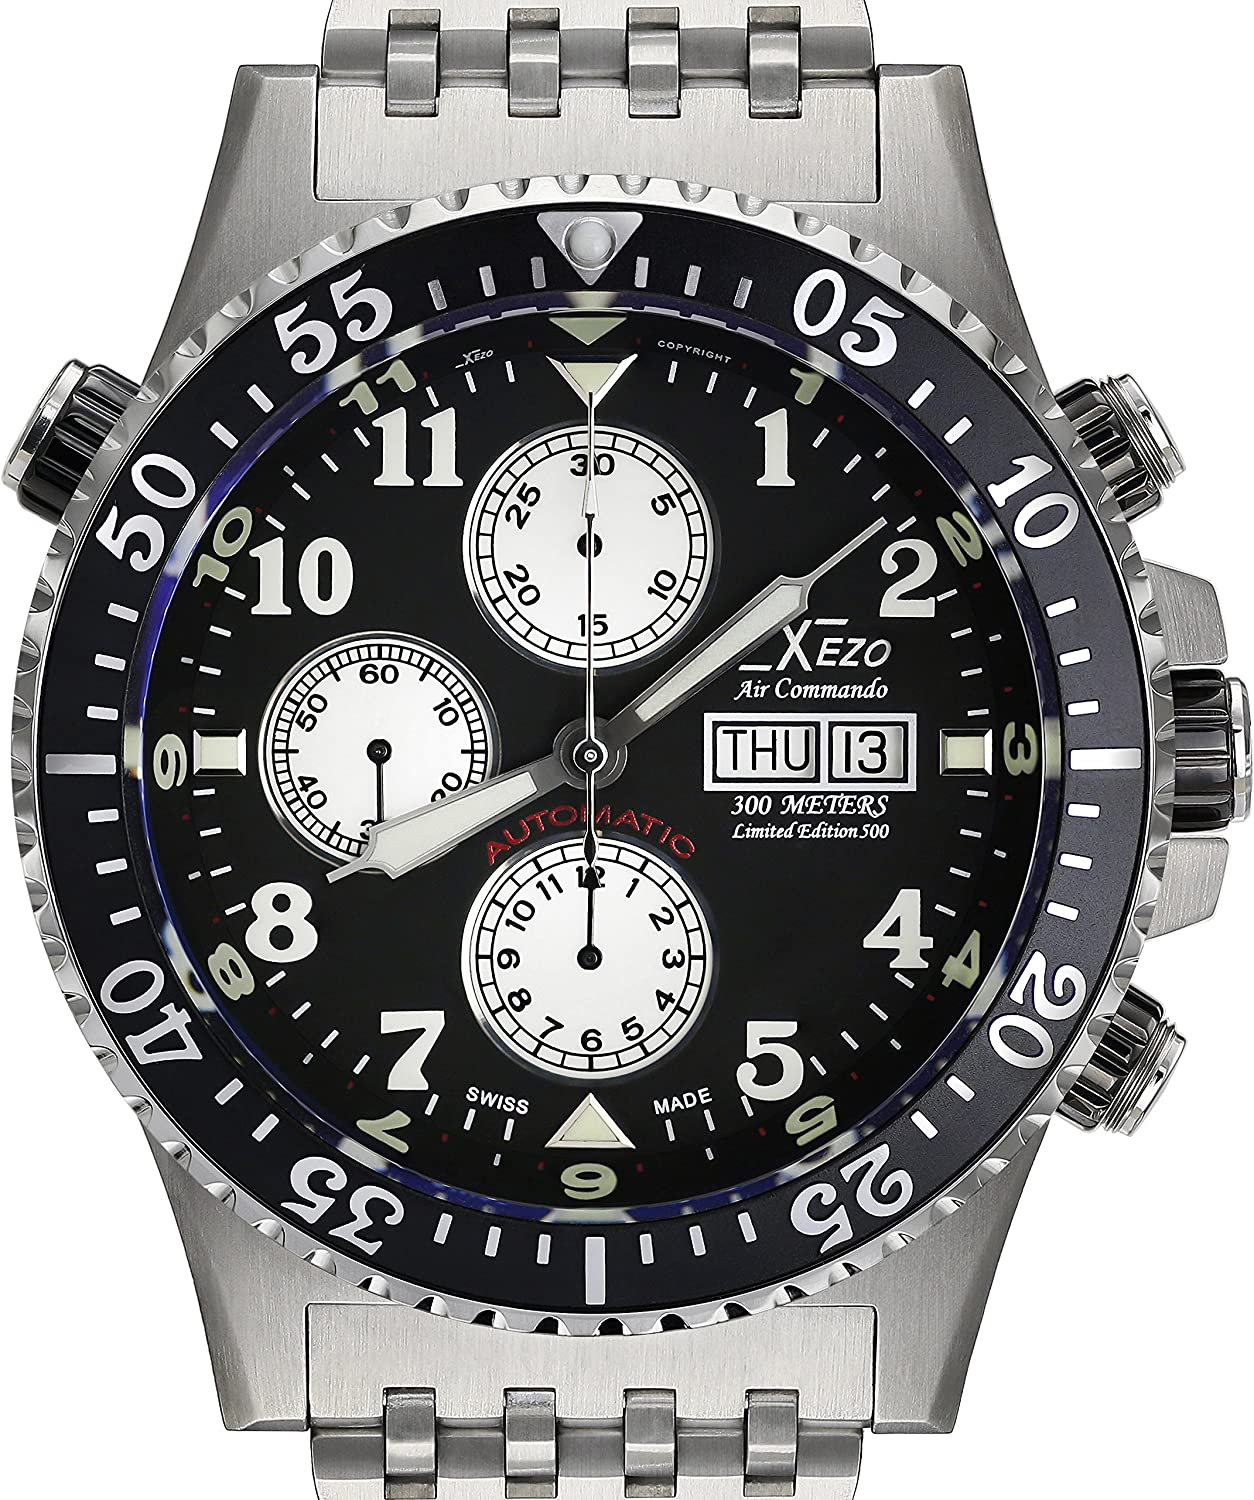 Xezo Men s Air Commando Diver, Pilot Swiss Automatic Valjoux 7750 Chronograph Wrist Watch. 2nd Time Zone. All Solid Steel. Diamond-Cut Numbers. Waterproof 30 Bars